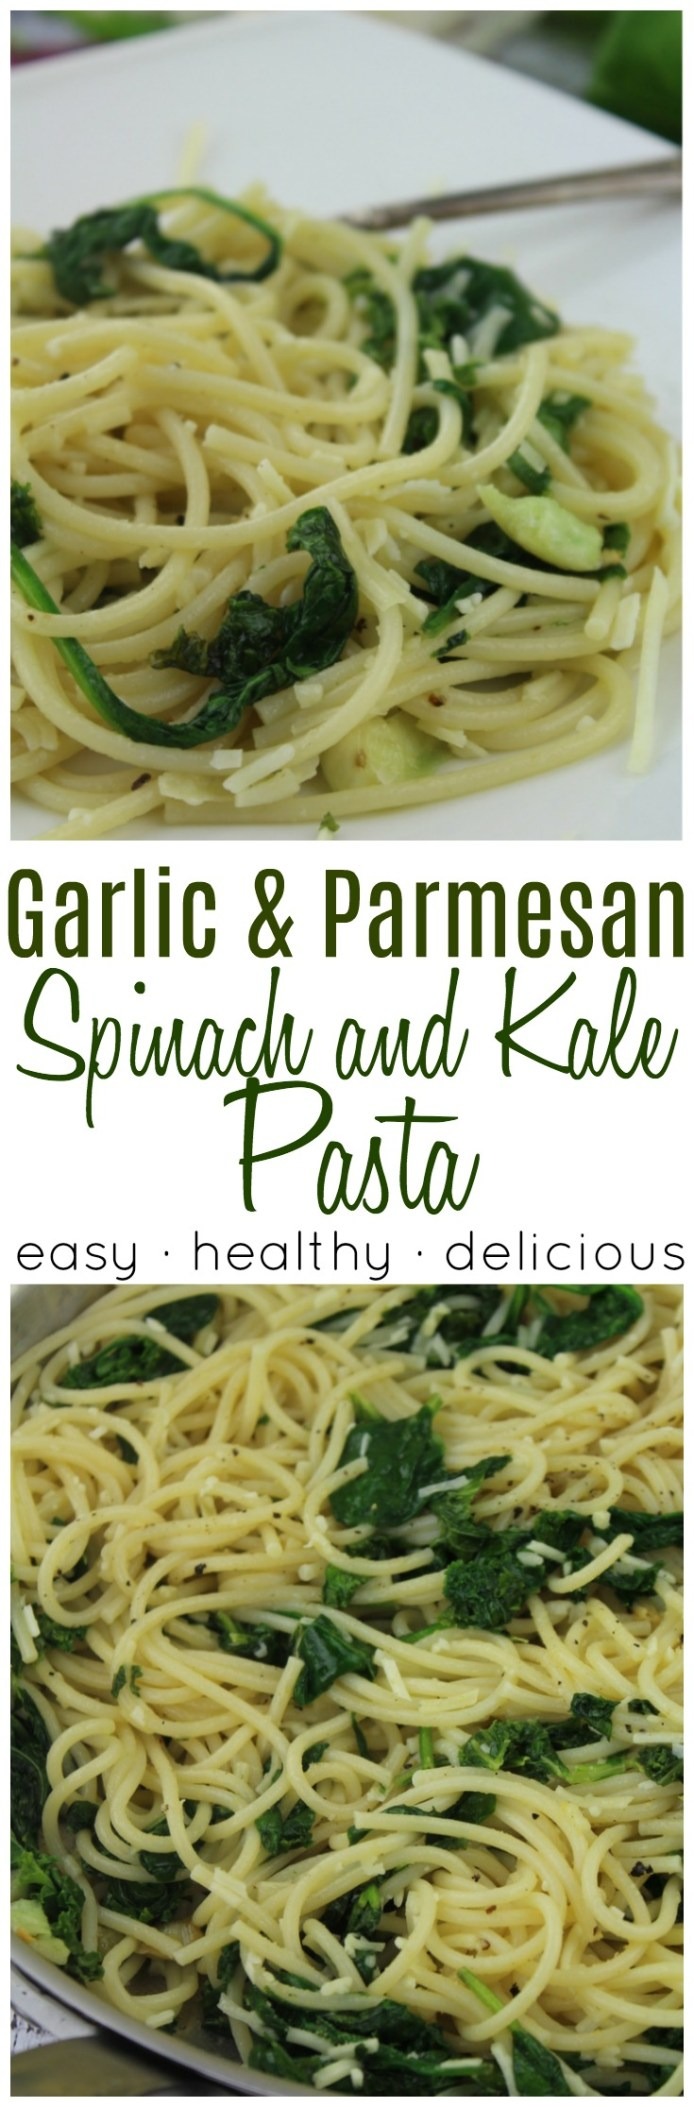 An incredibly delicious meatless meal that is simple on ingredients but BIG on flavor!    #meatless #spinach #kale #healthy #pasta